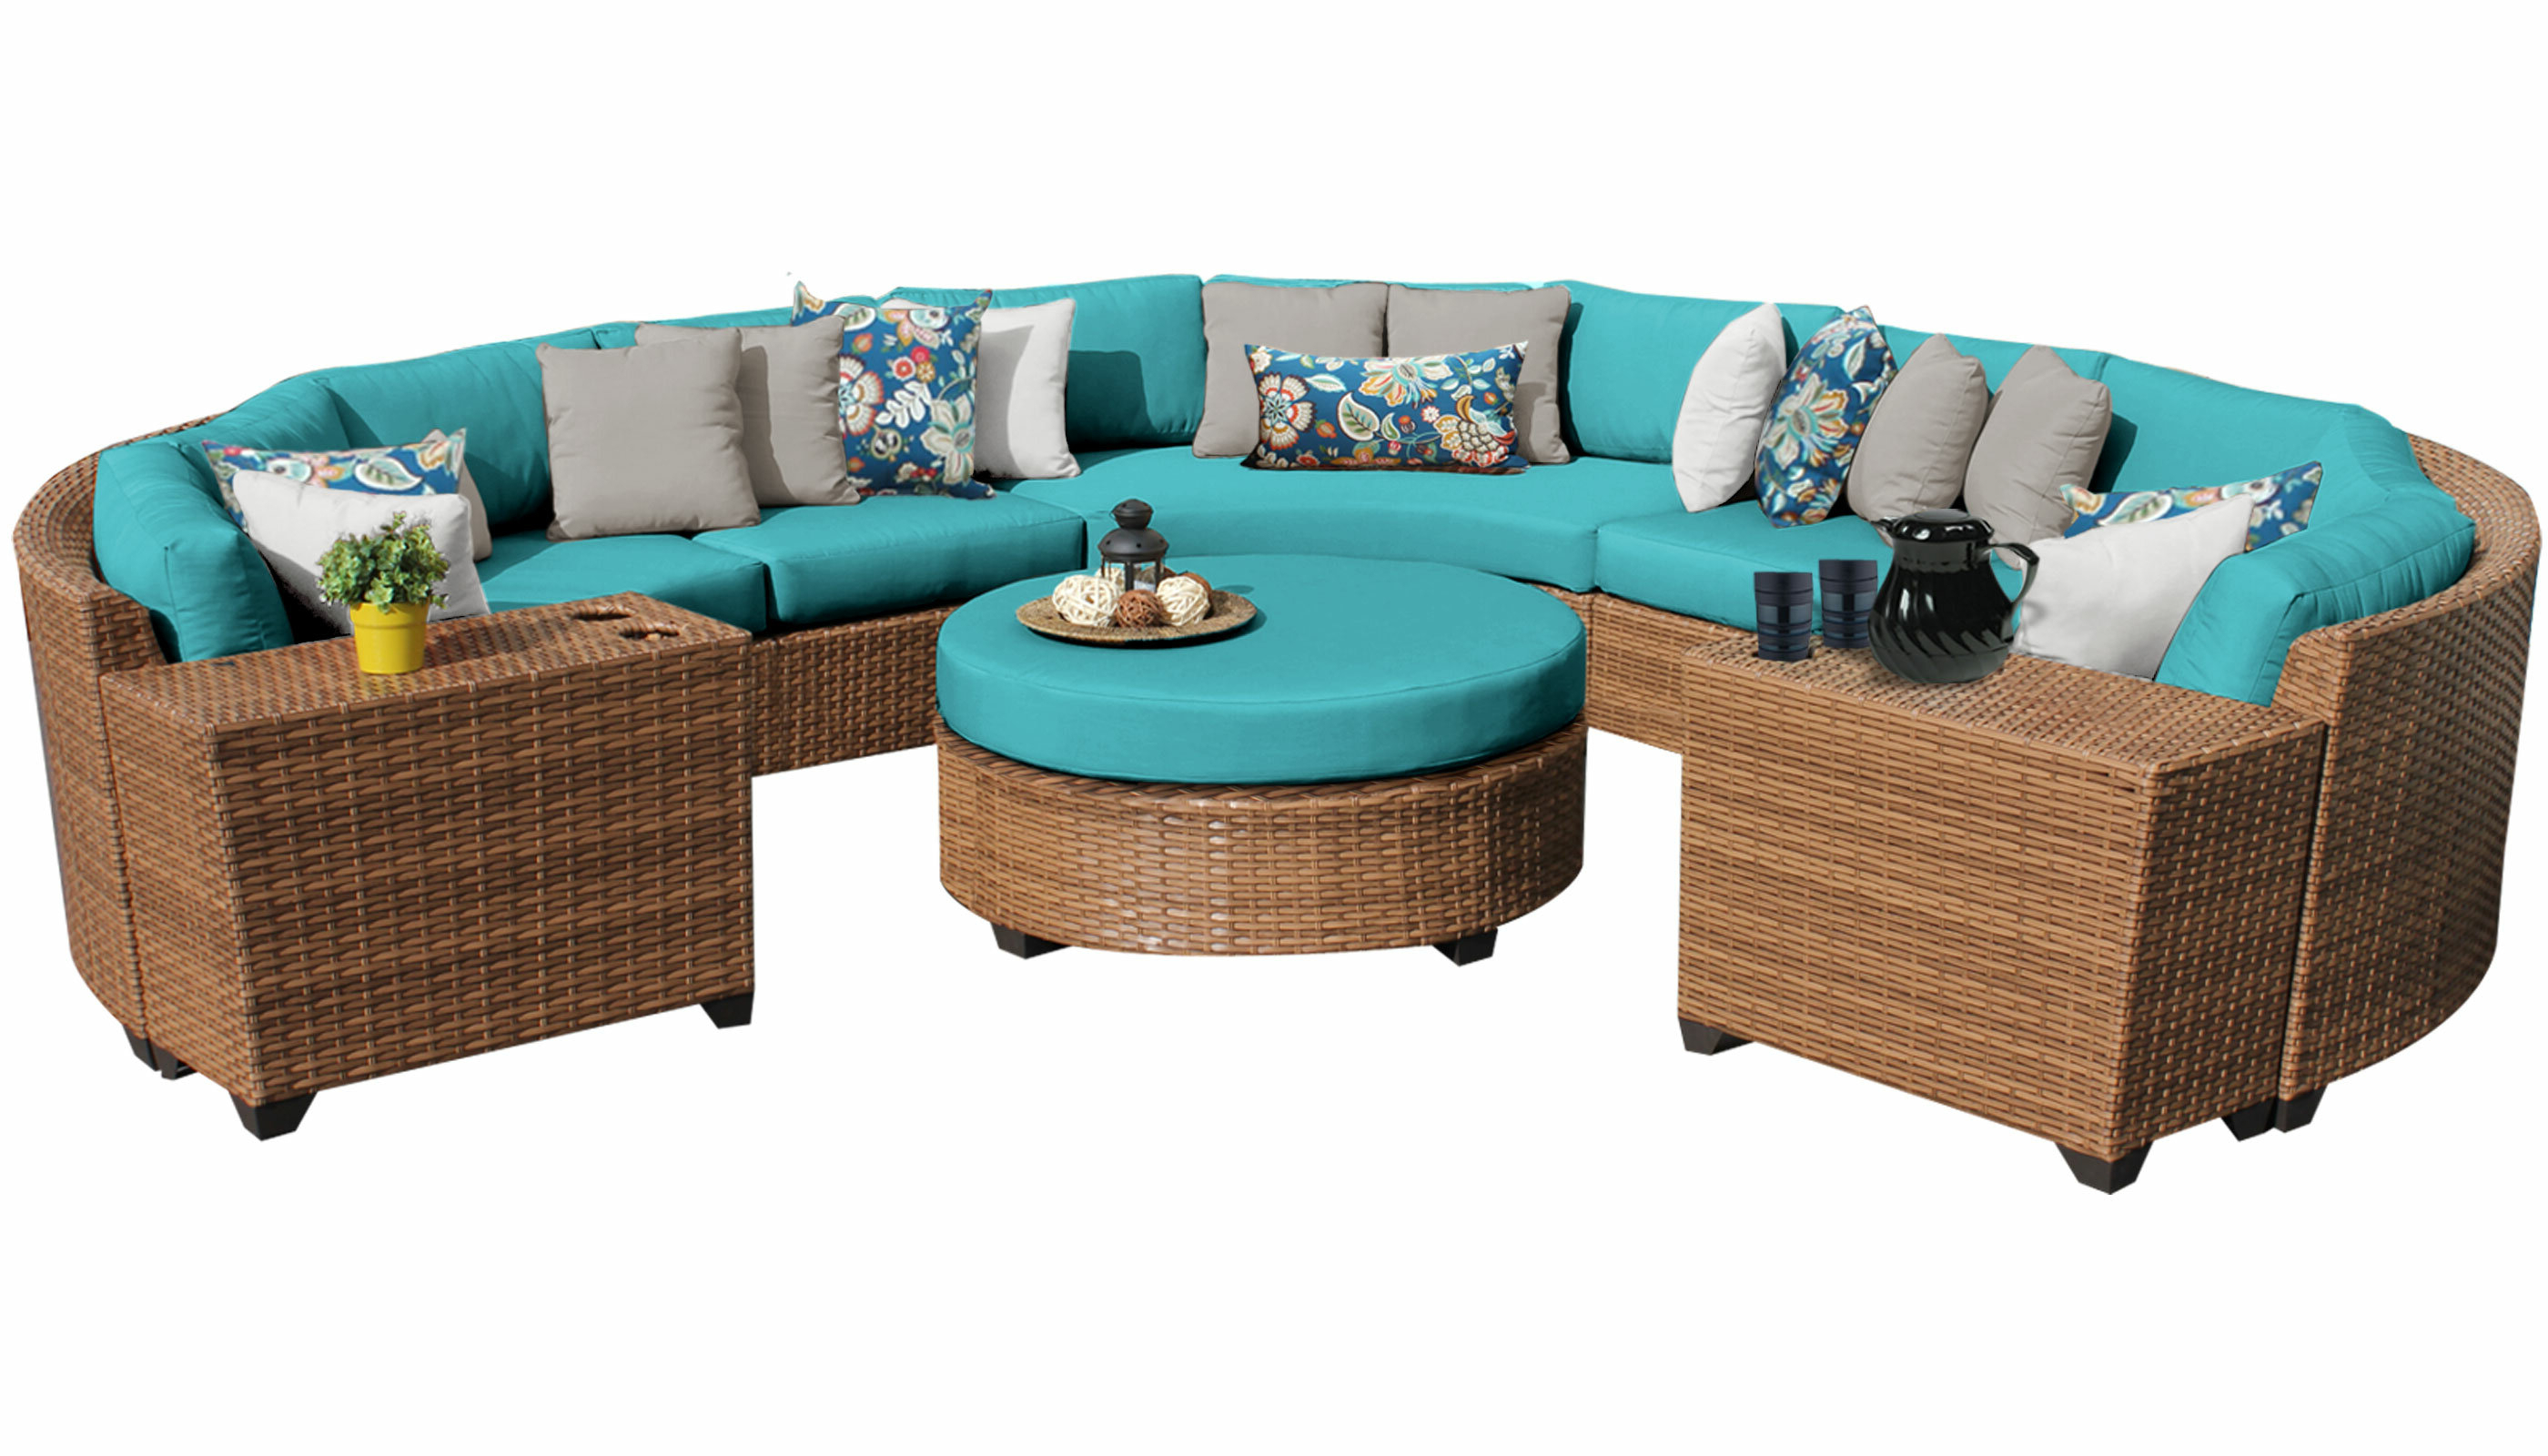 Trendy Waterbury 7 Piece Rattan Sectional Set With Cushions Regarding Waterbury Curved Armless Sofa With Cushions (View 12 of 20)